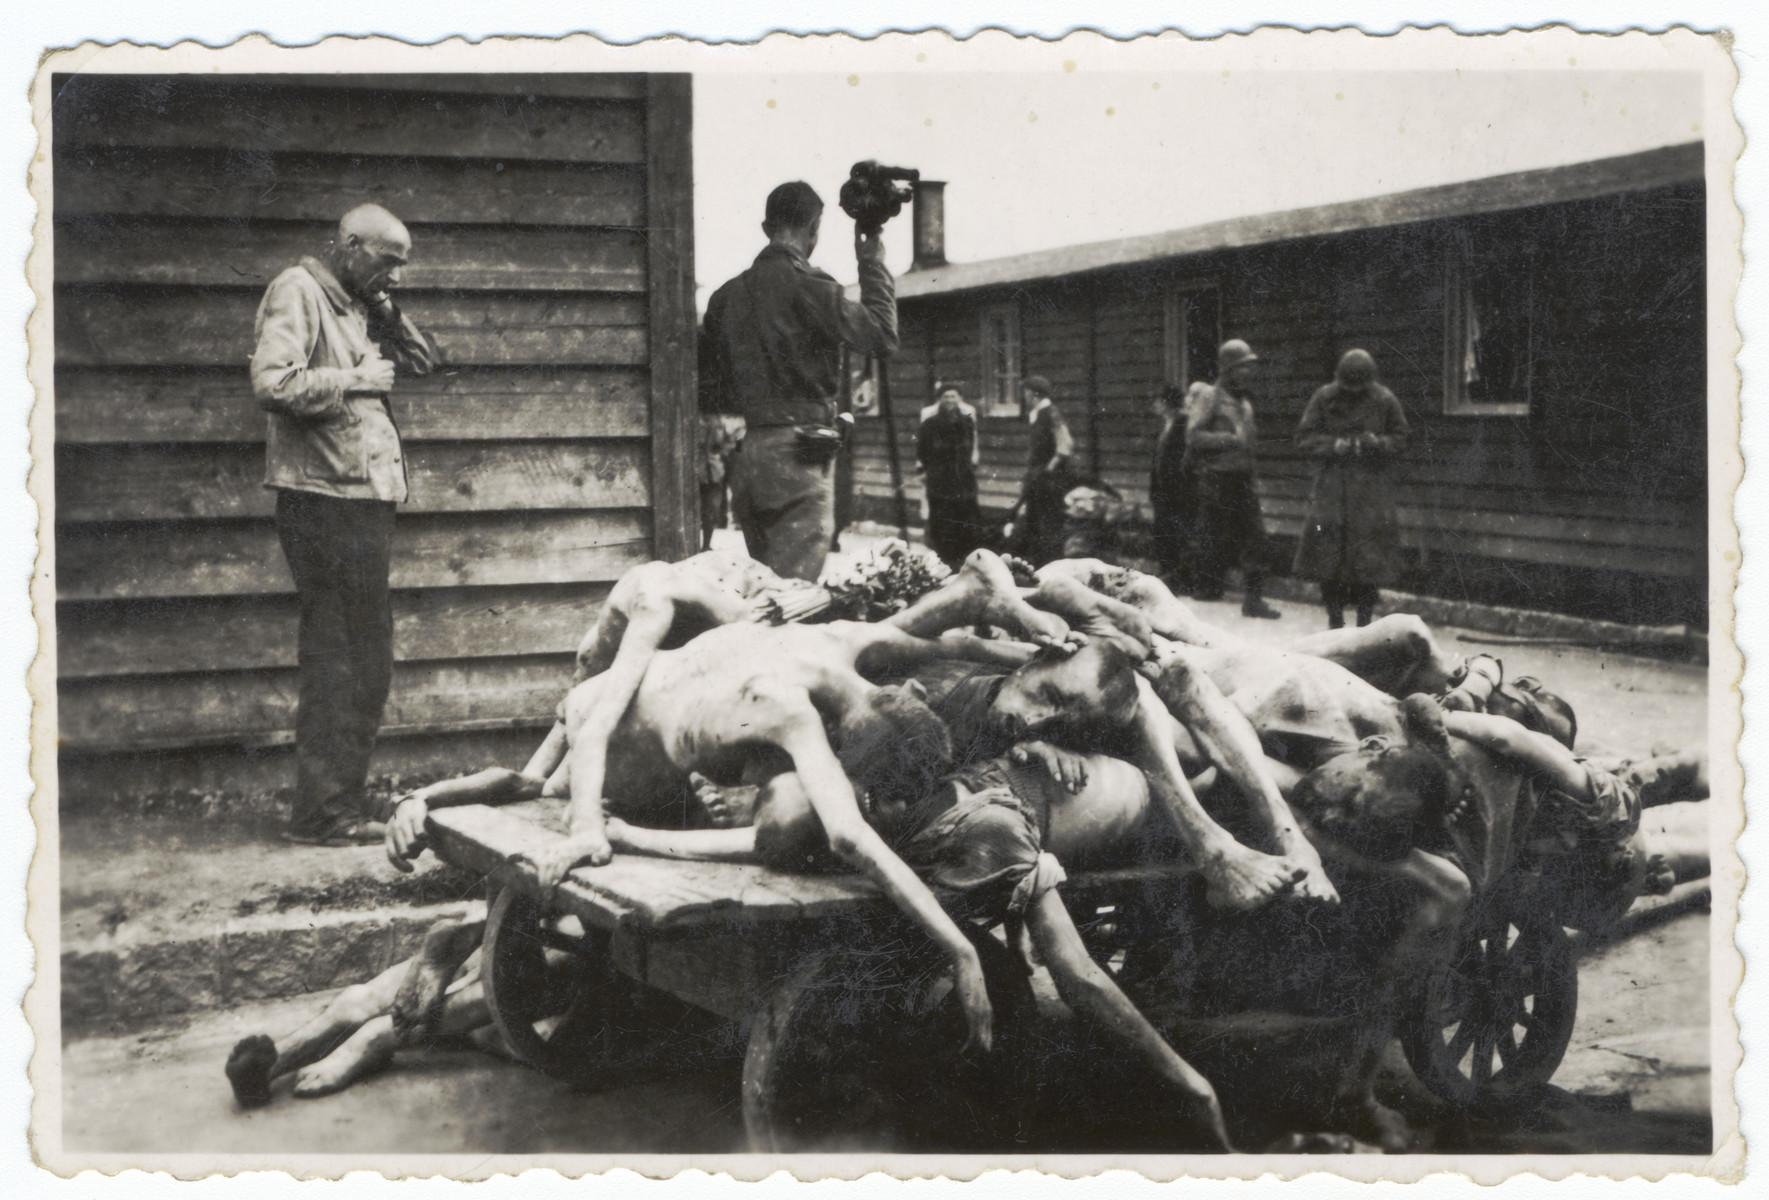 An American signal corps photographer films the clearing of piles of corpses in the Gusen concentration camp.